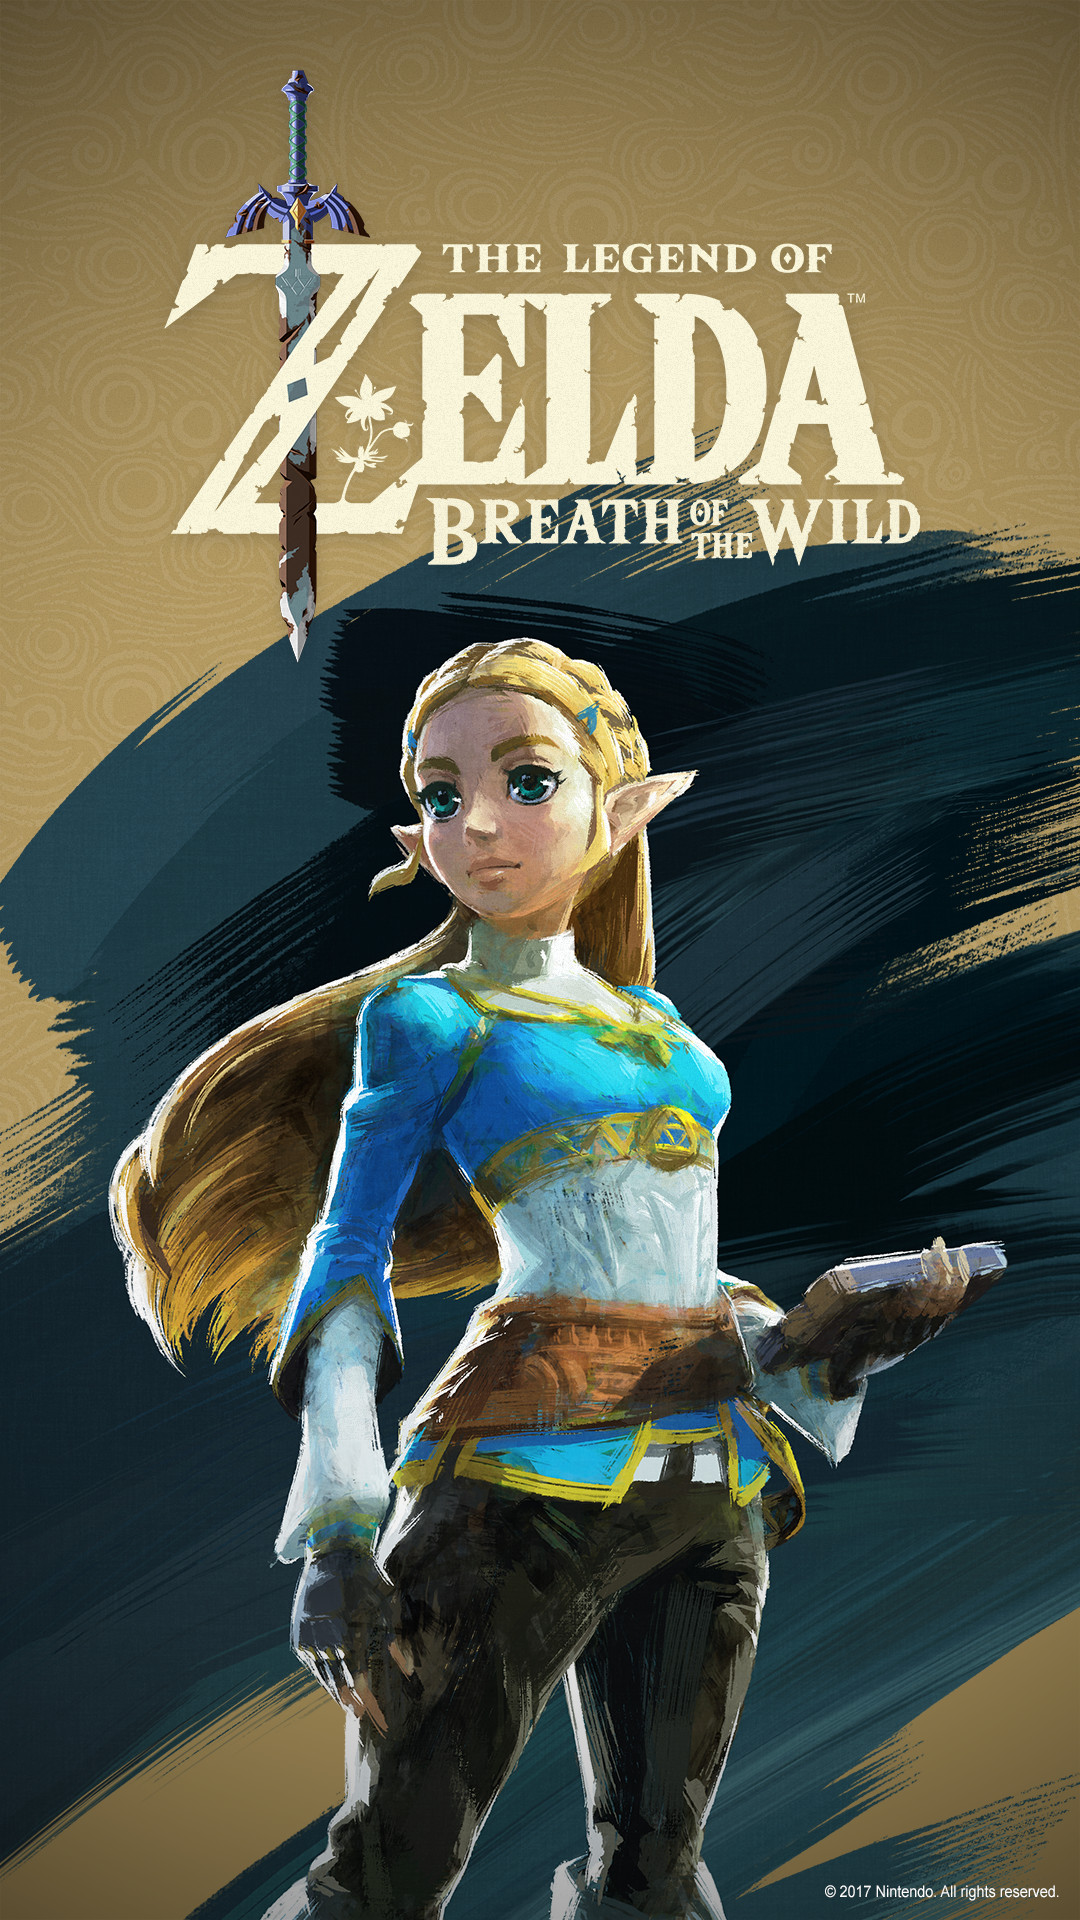 The Legend of Zelda™ Breath of the Wild for the Nintendo Switch